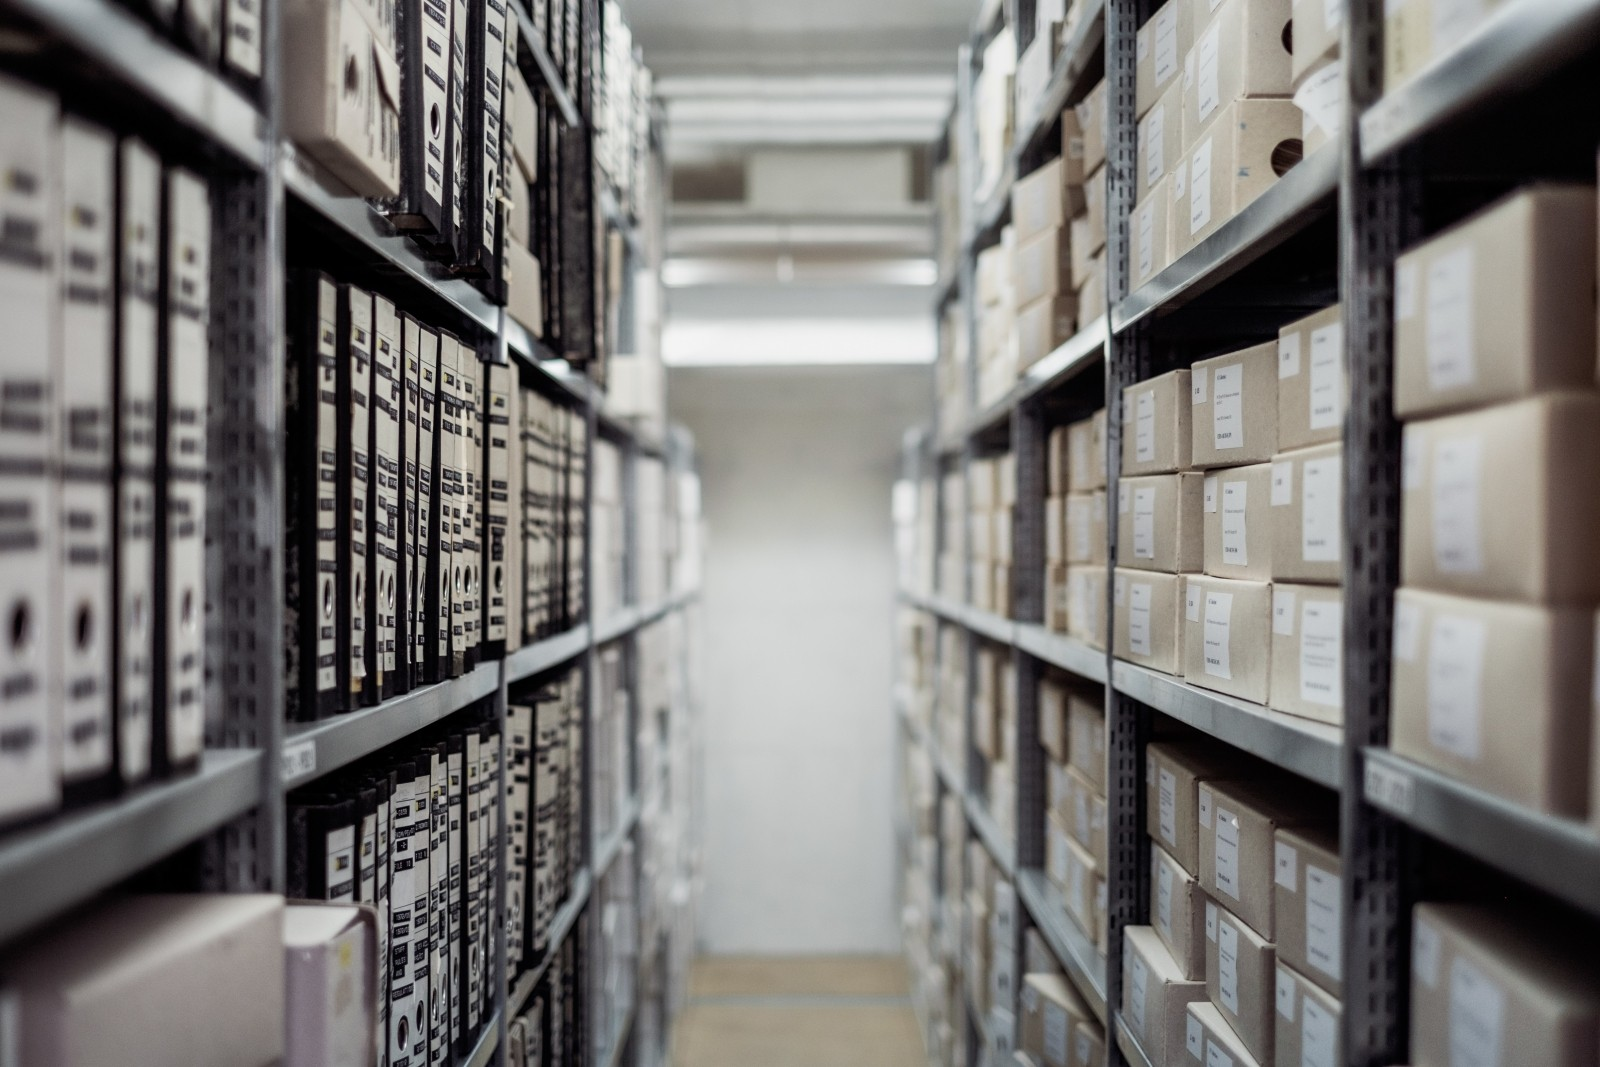 finding polish documents archive document search shelves documents